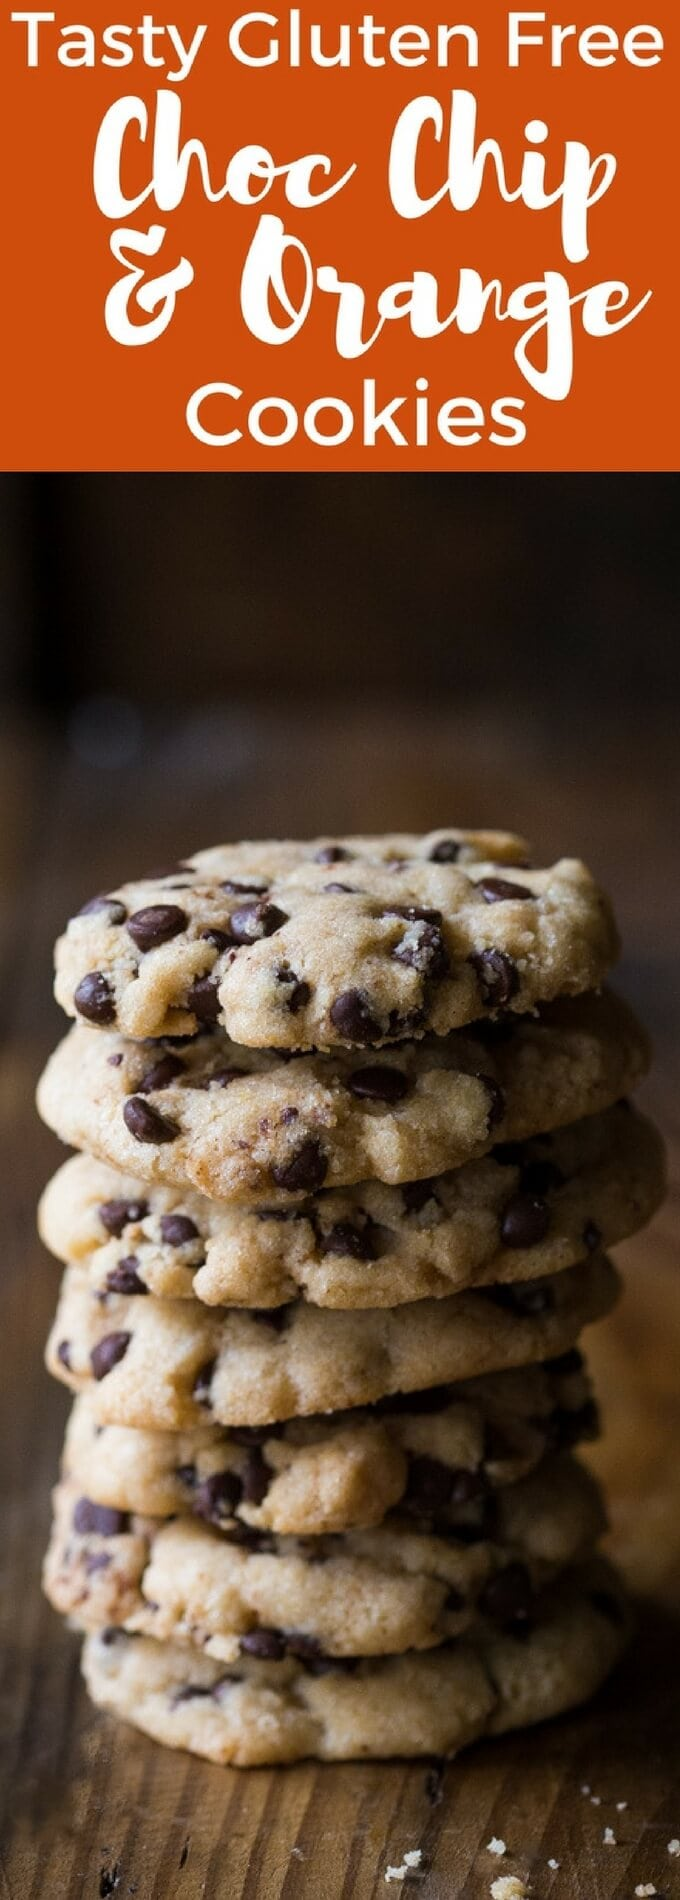 Gorgeous Gluten Free Chocolate Chip Cookies with a lovely Orange flavor! They're so easy to make and a perfect recipe to try if you're a new to gluten free baking.